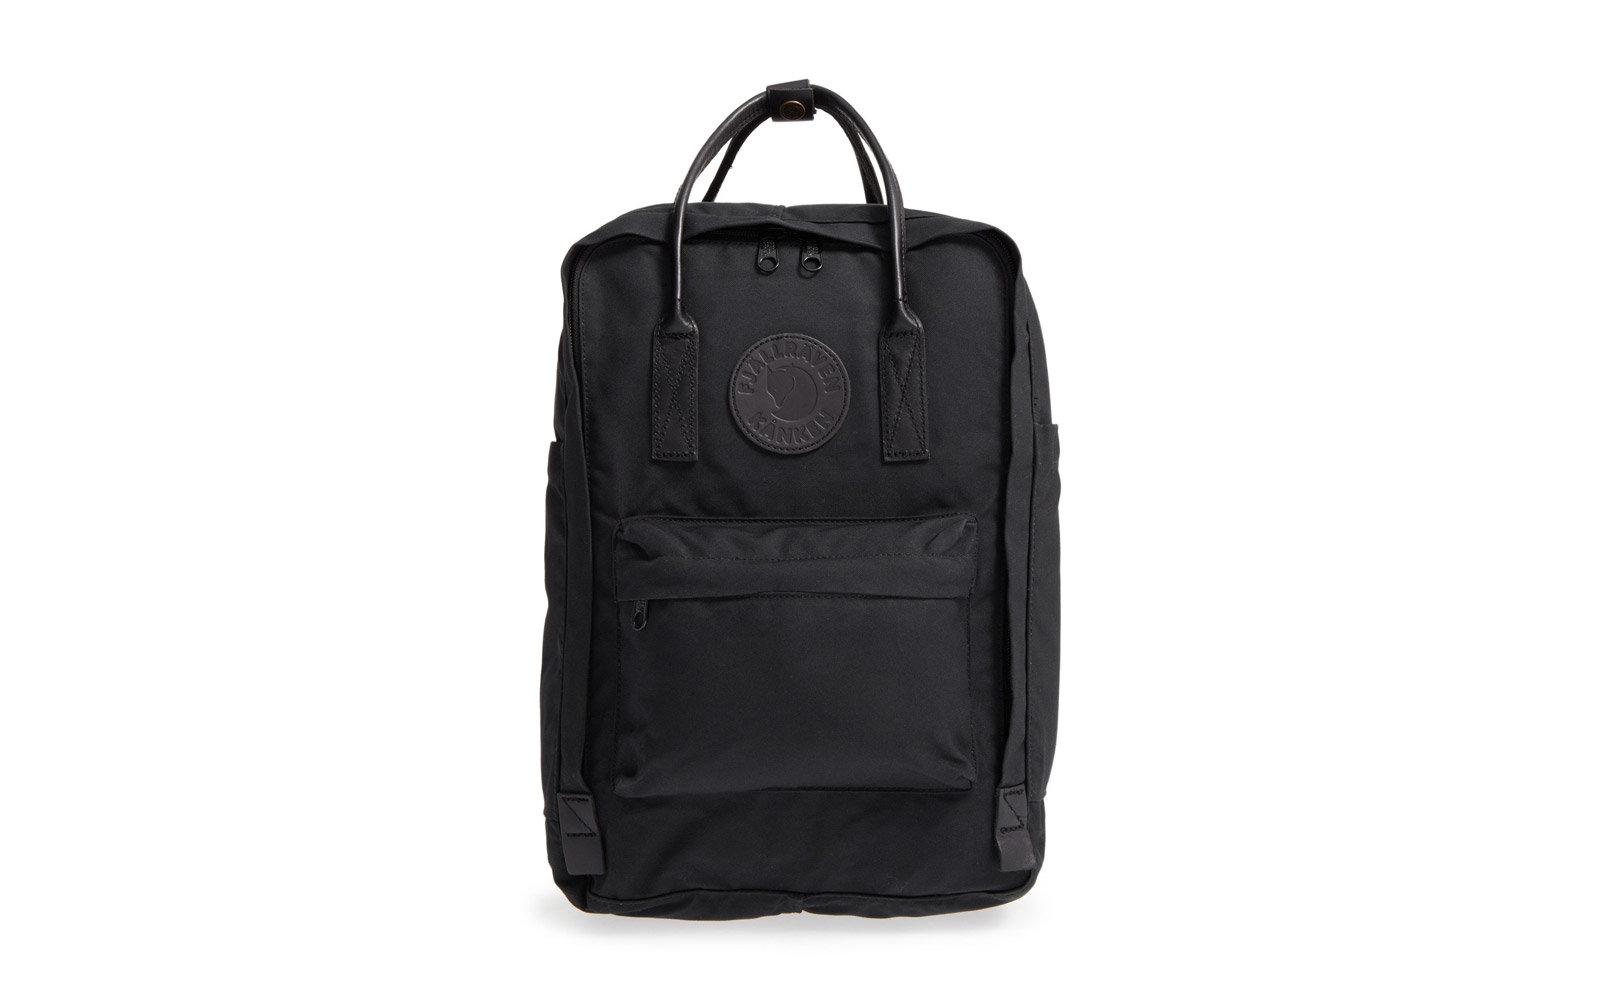 1dda9a8877 The Best Laptop Bags for Business Travel